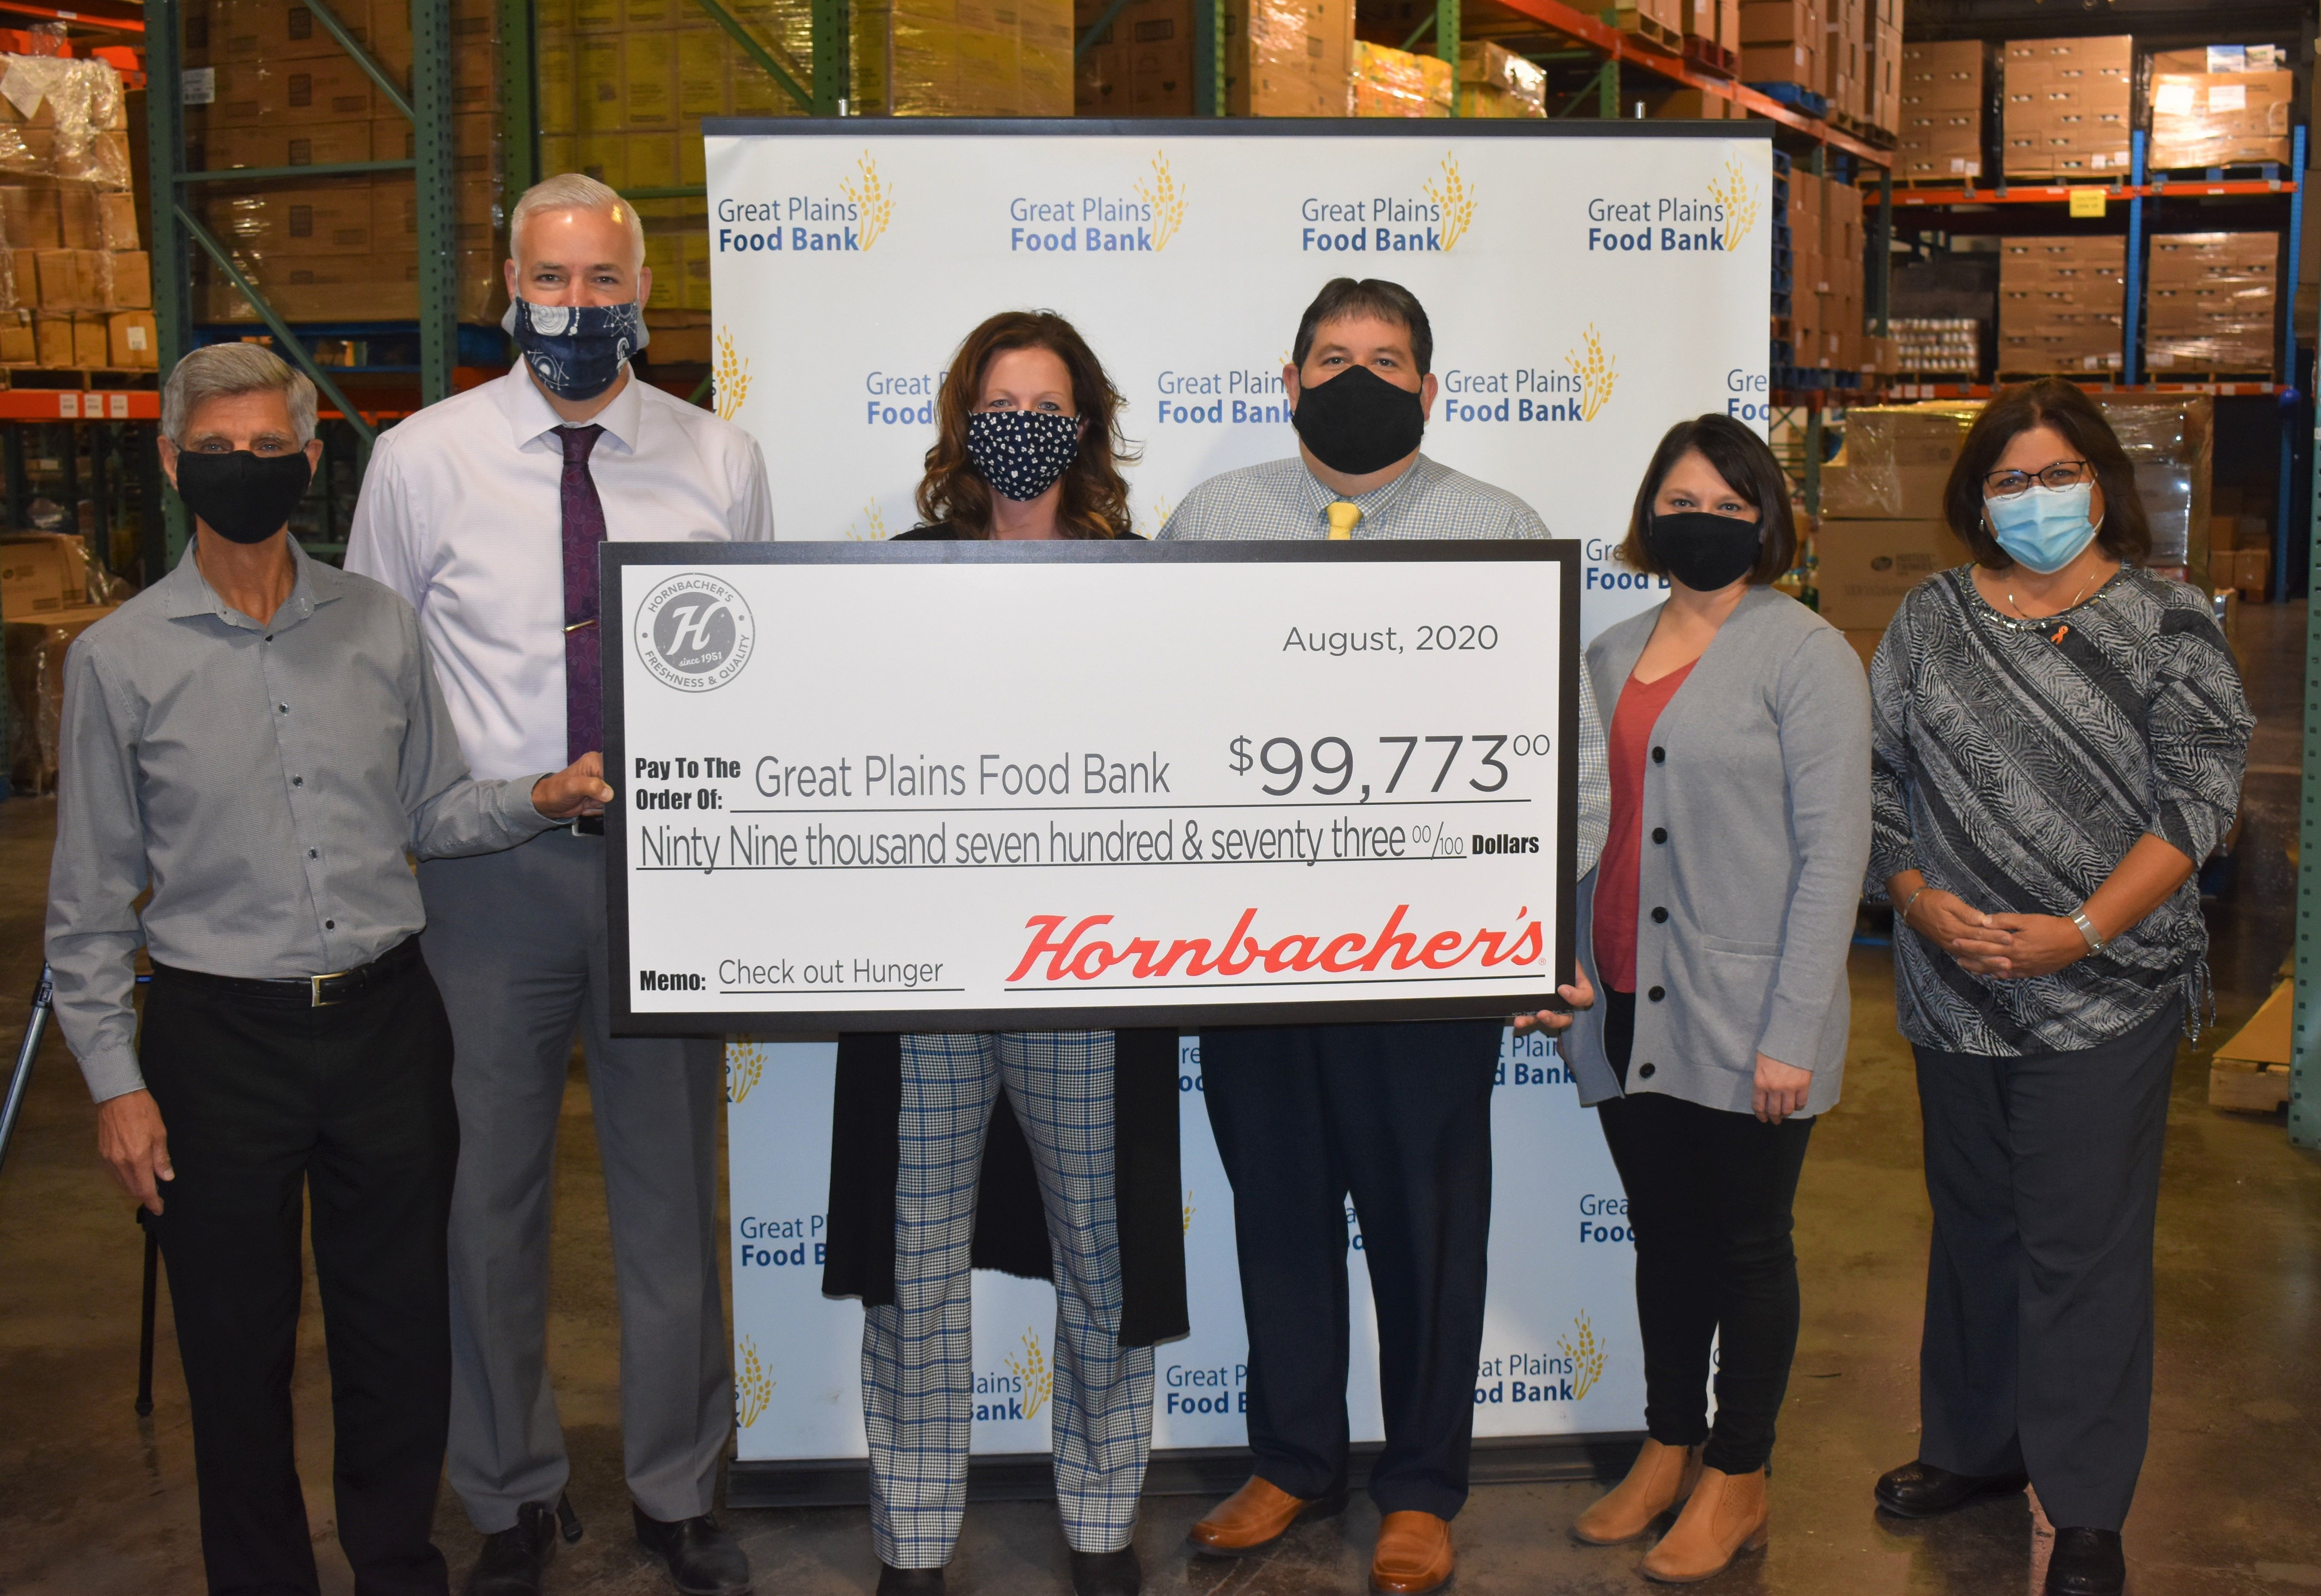 Hornbacher's marks Hunger Action Day with a record near $100,000 donation to the Great Plains Food Bank through annual Check Out Hunger campaign